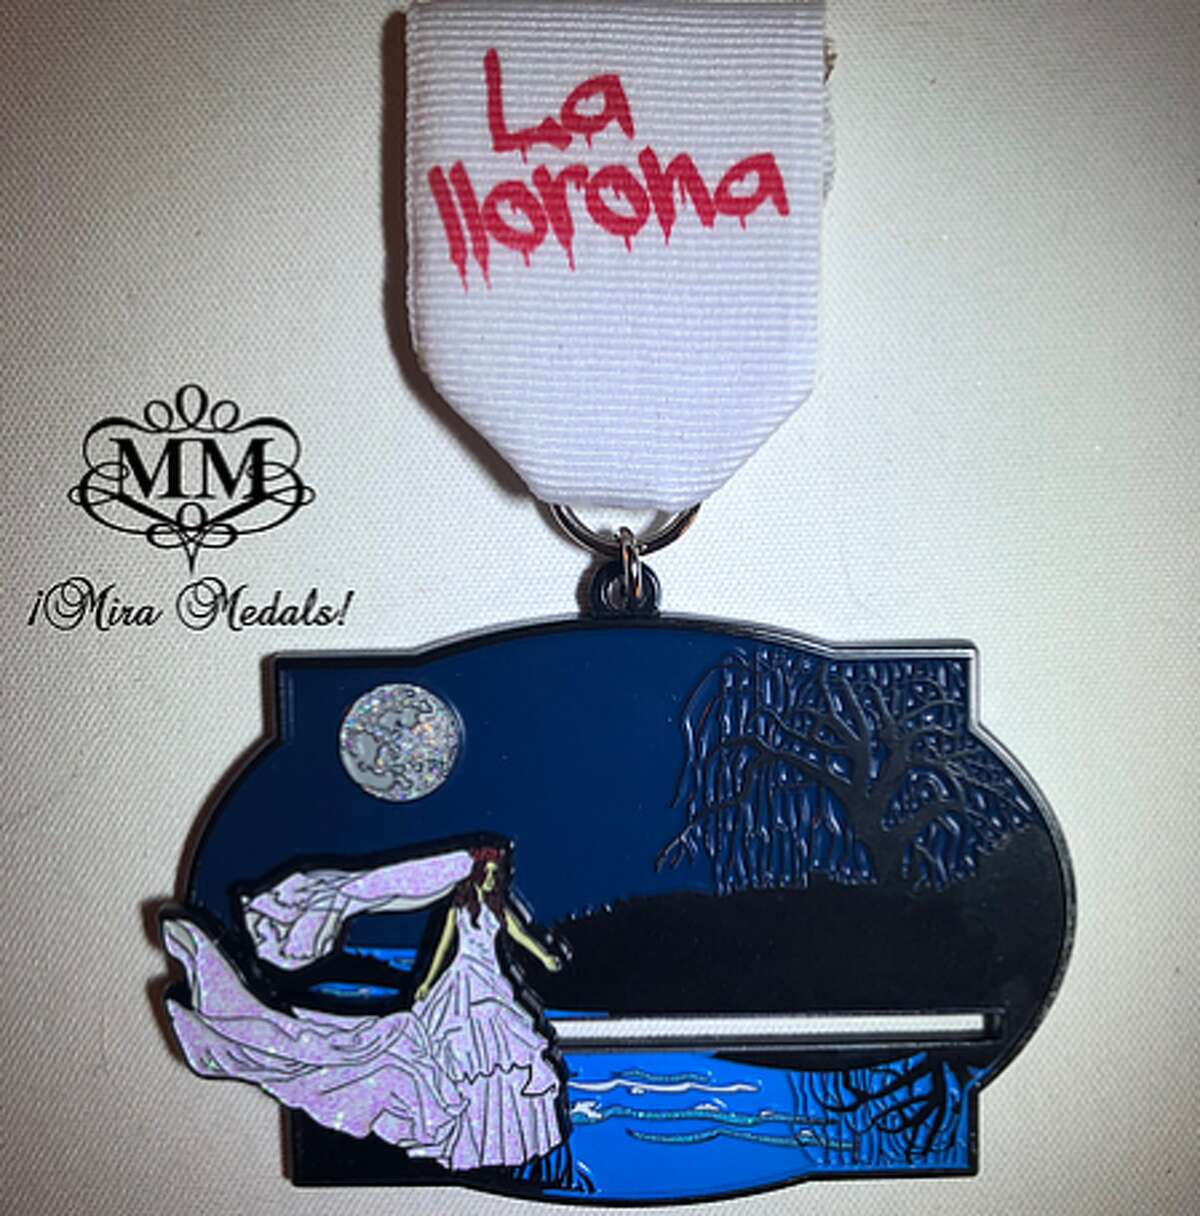 Mira Medals, owned by husband-wife duo Albert and Natasha Gonzales, designed the La Llorona pin for Fiesta 2019 that's packed with fun features.